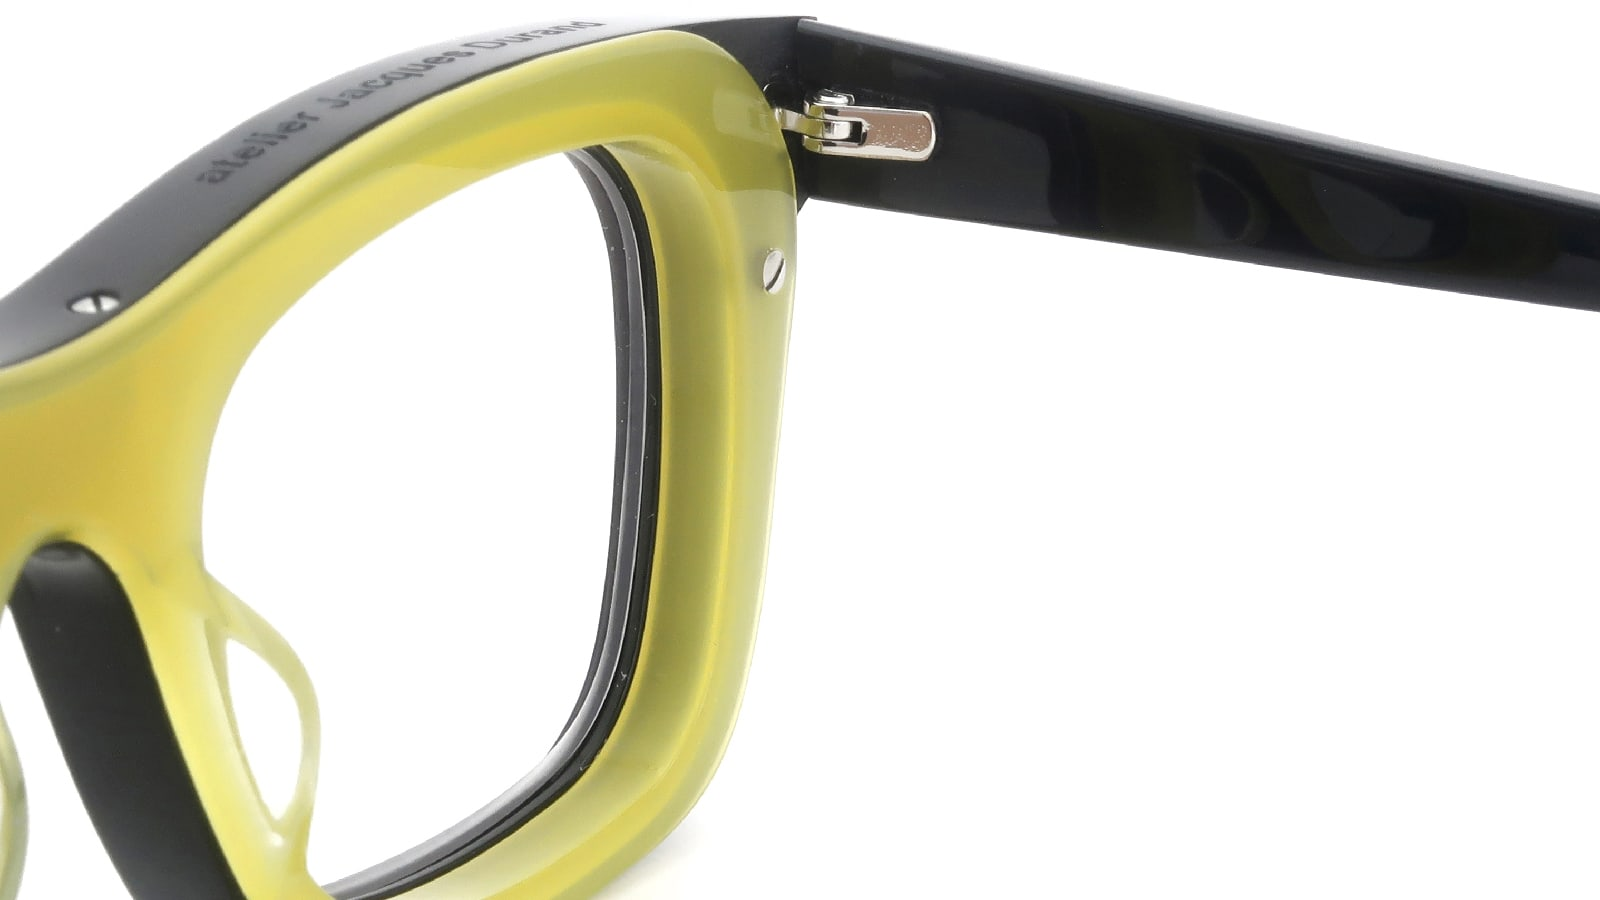 Jacques Durand Plus is + 234(INTRADOS) col.002 HM-black yellow 10